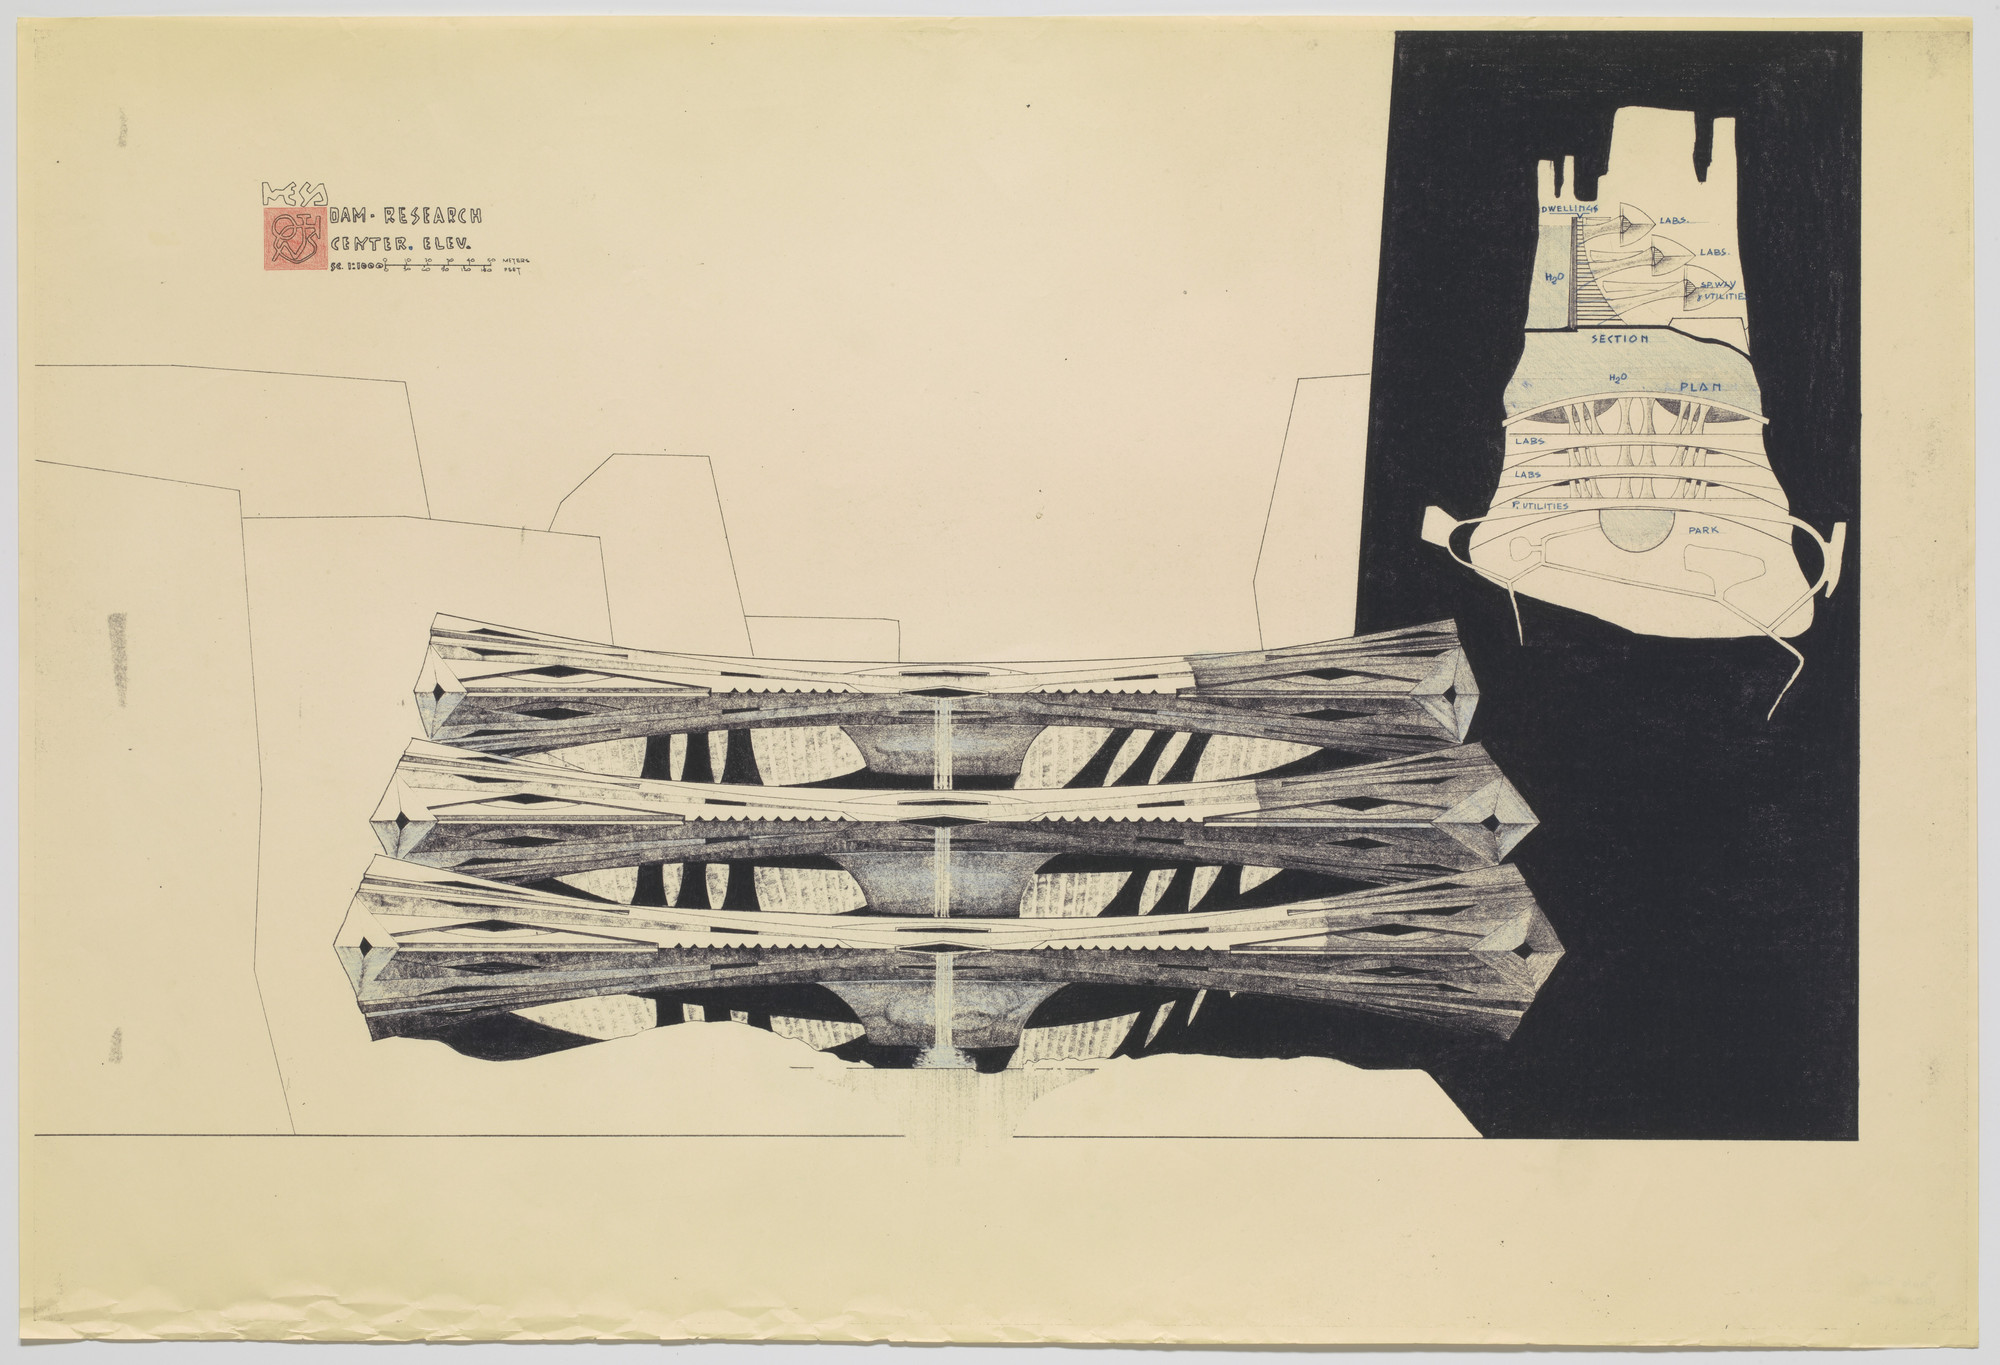 Paolo Soleri. Dam–Research Center Project (Plan and section). c.1960